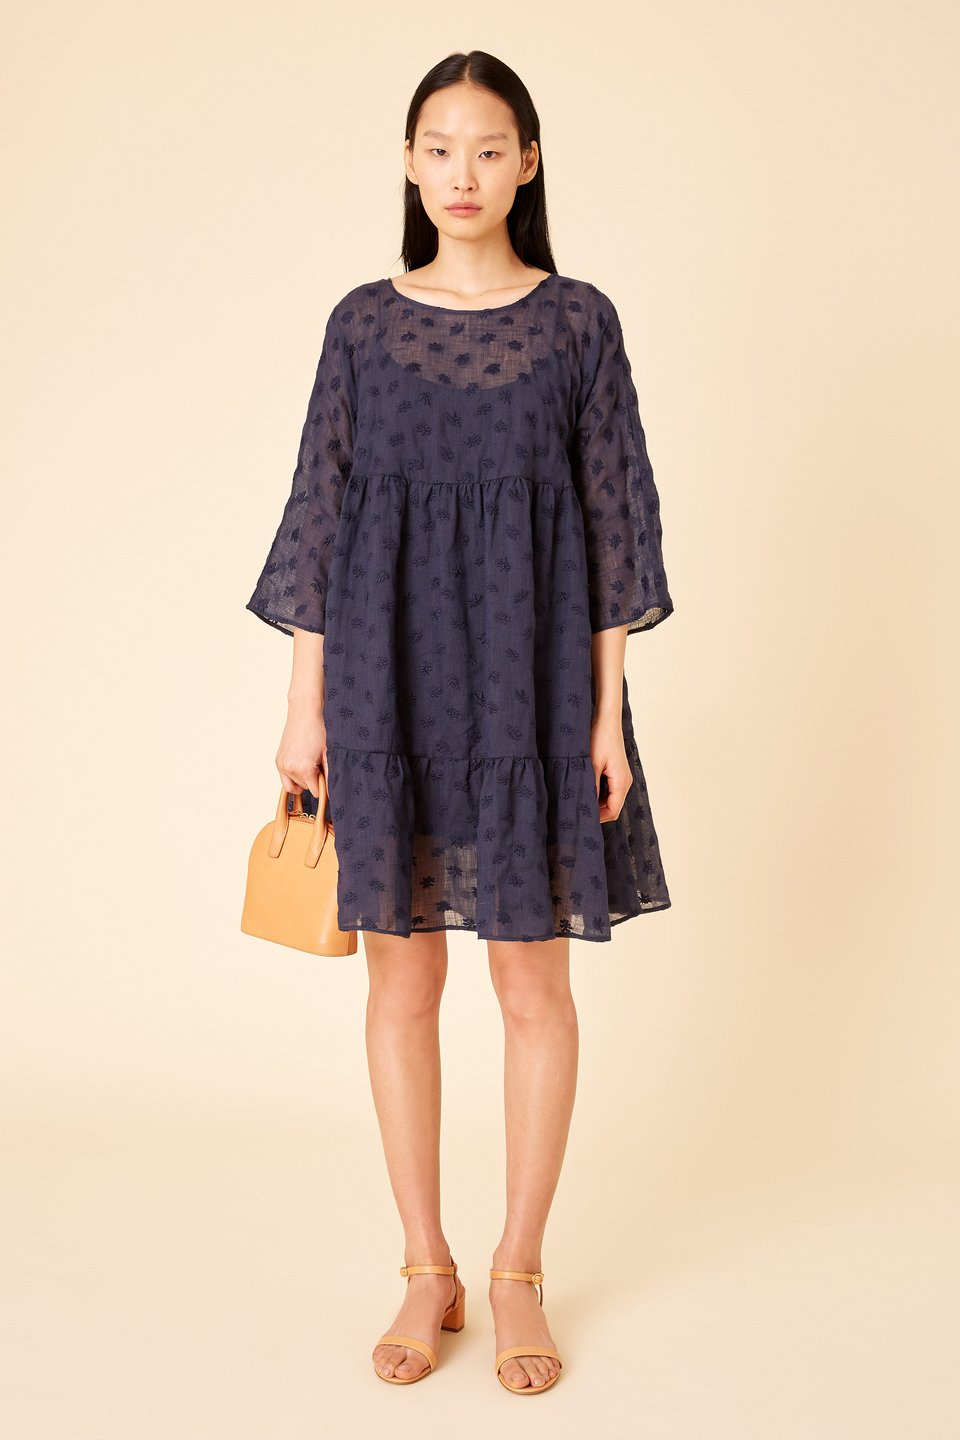 Mansur Gavriel Floral Embroidered Linen Tiered Dress